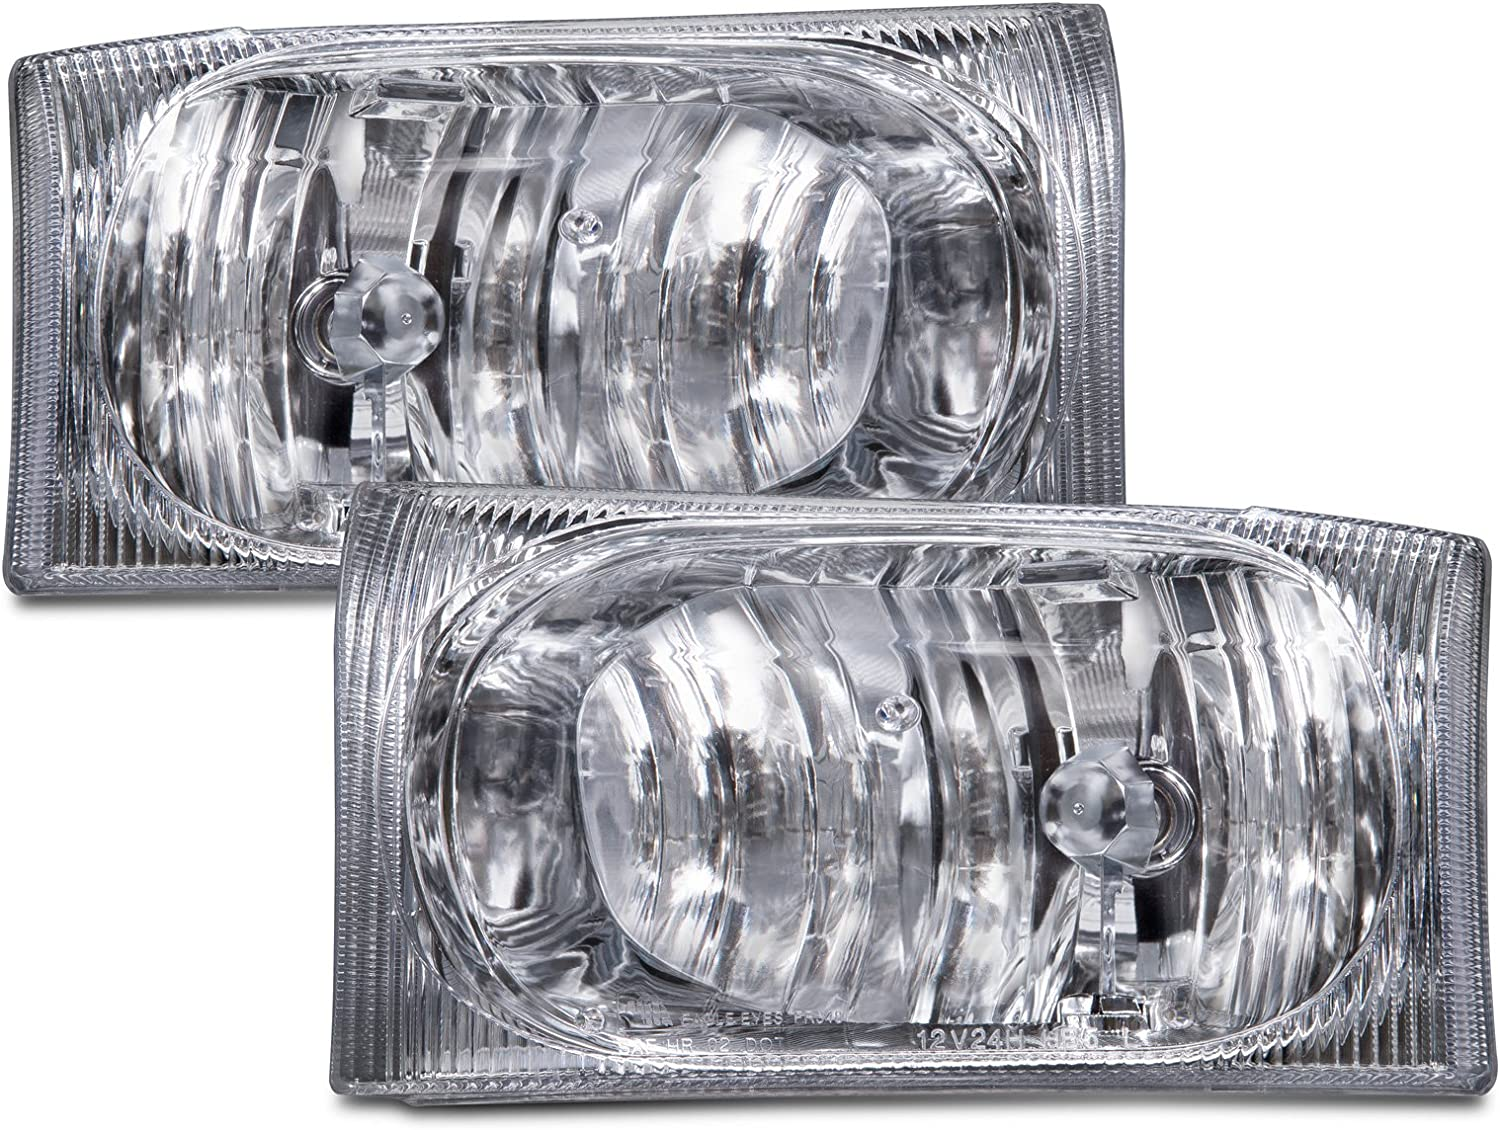 Perde Ford 2004 F 250 Super Duty Light Bulbs Brand New Halogen Headlights With A Smoke Lens Fits 2001 Excursion 2002 2005 150 And 350 Series